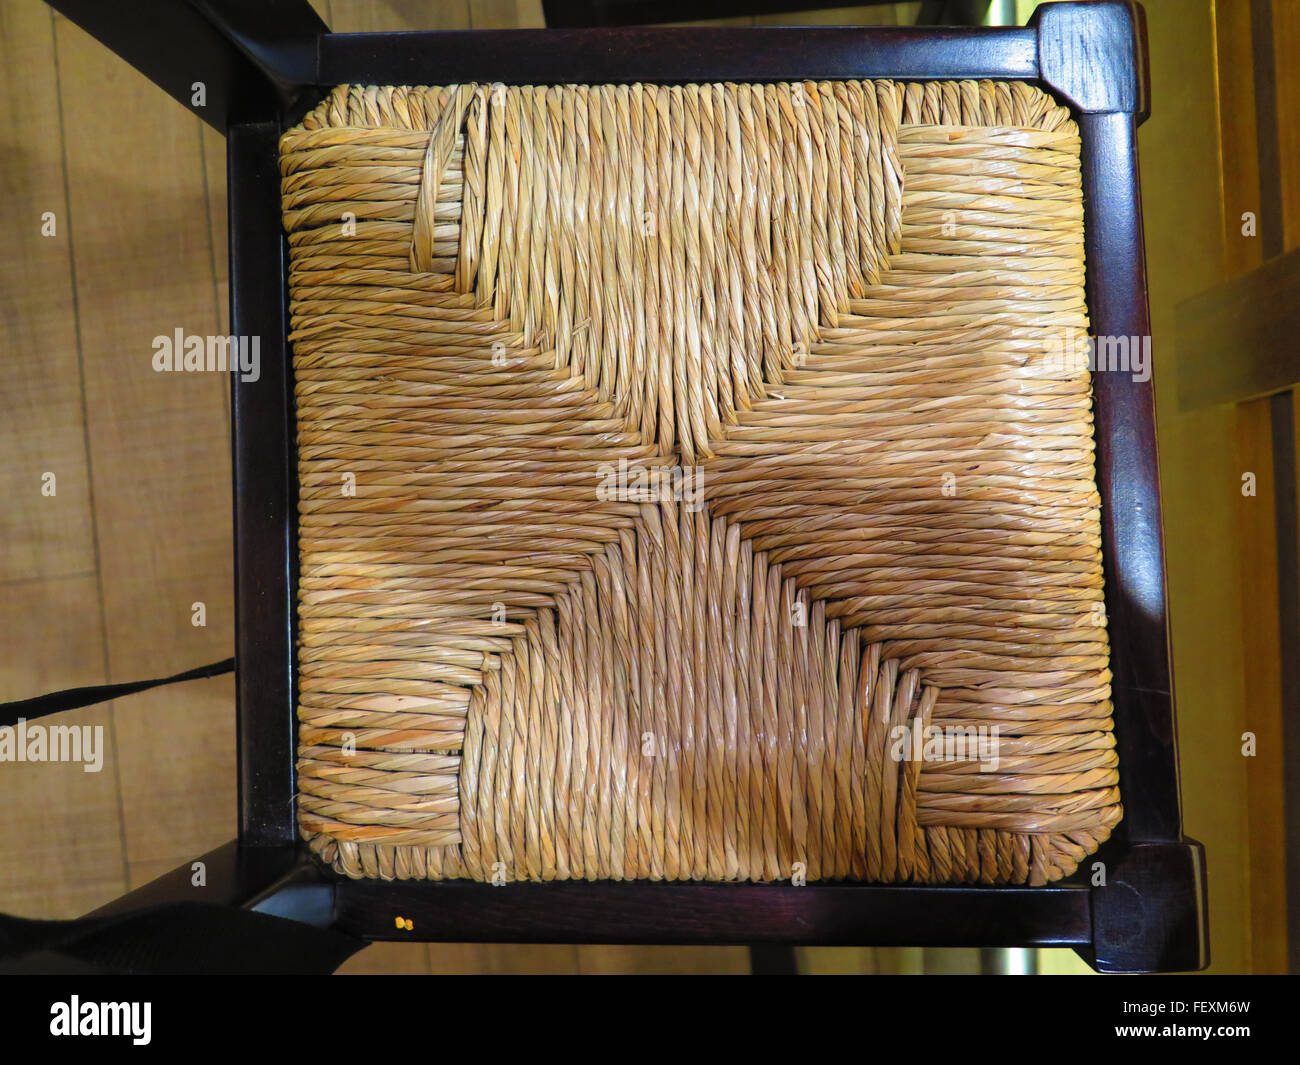 Close-up of rush woven wooden chair seat - Stock Image